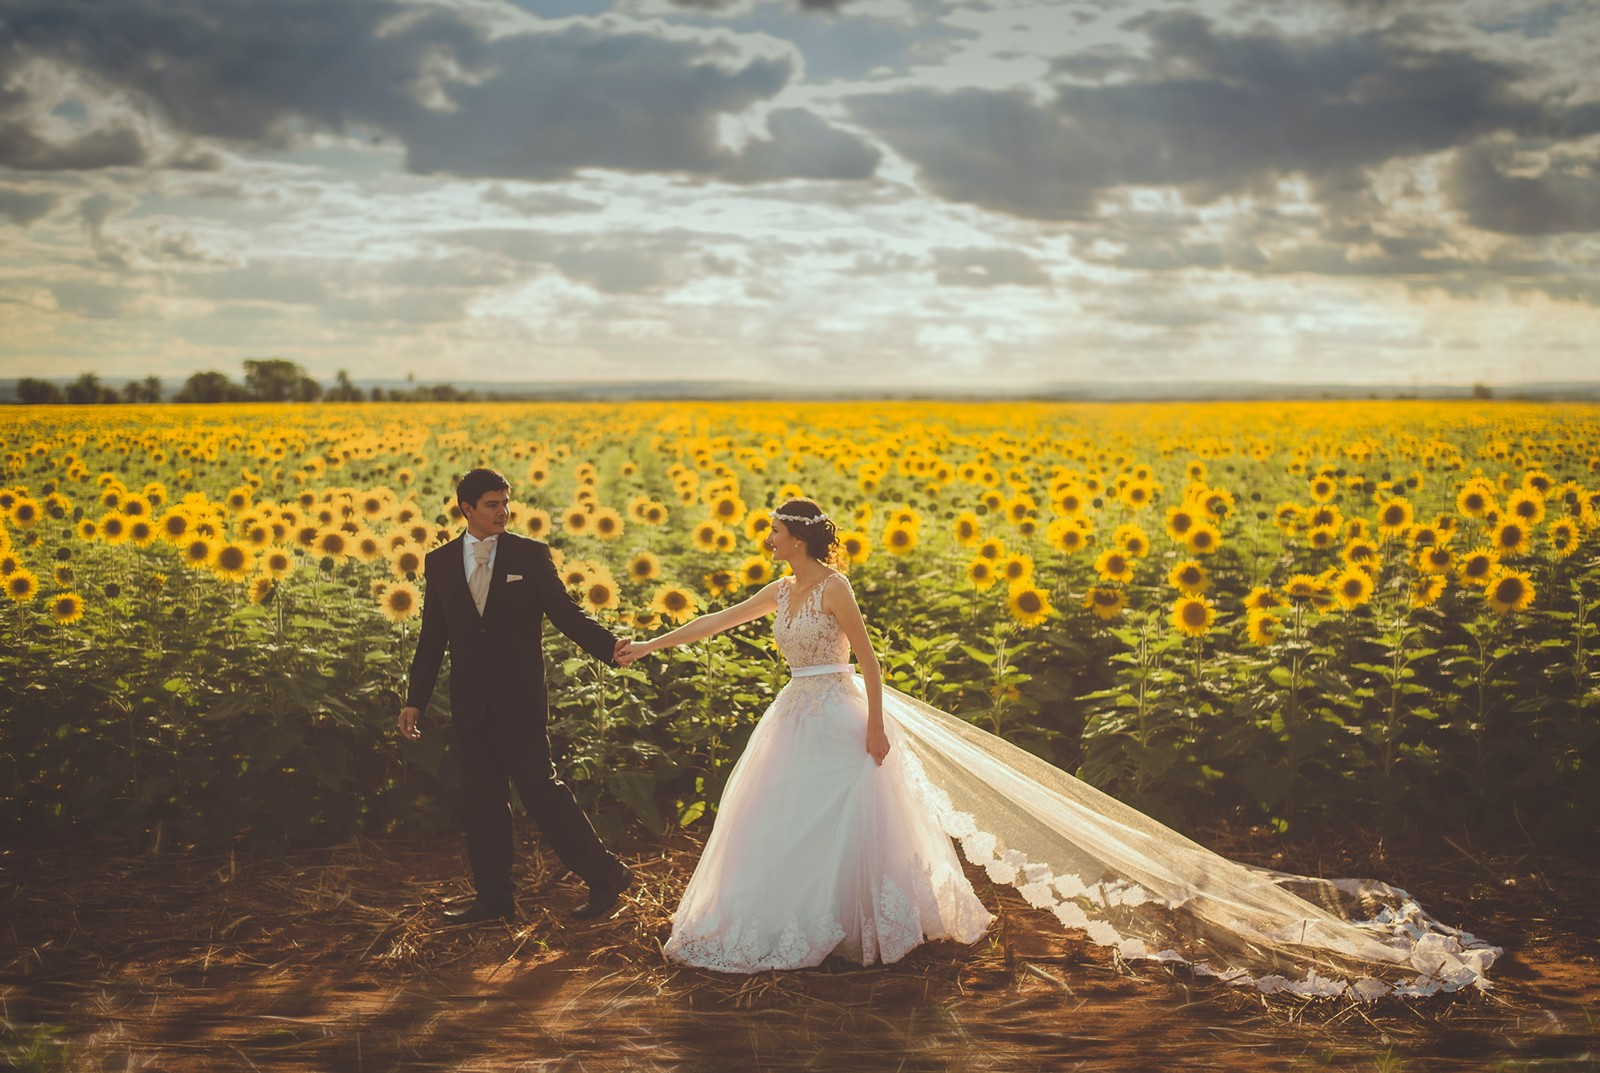 the future of wedding suppliers contracts - legal advice for wedding suppliers - stanford gould online - bride and groom in sunflowers